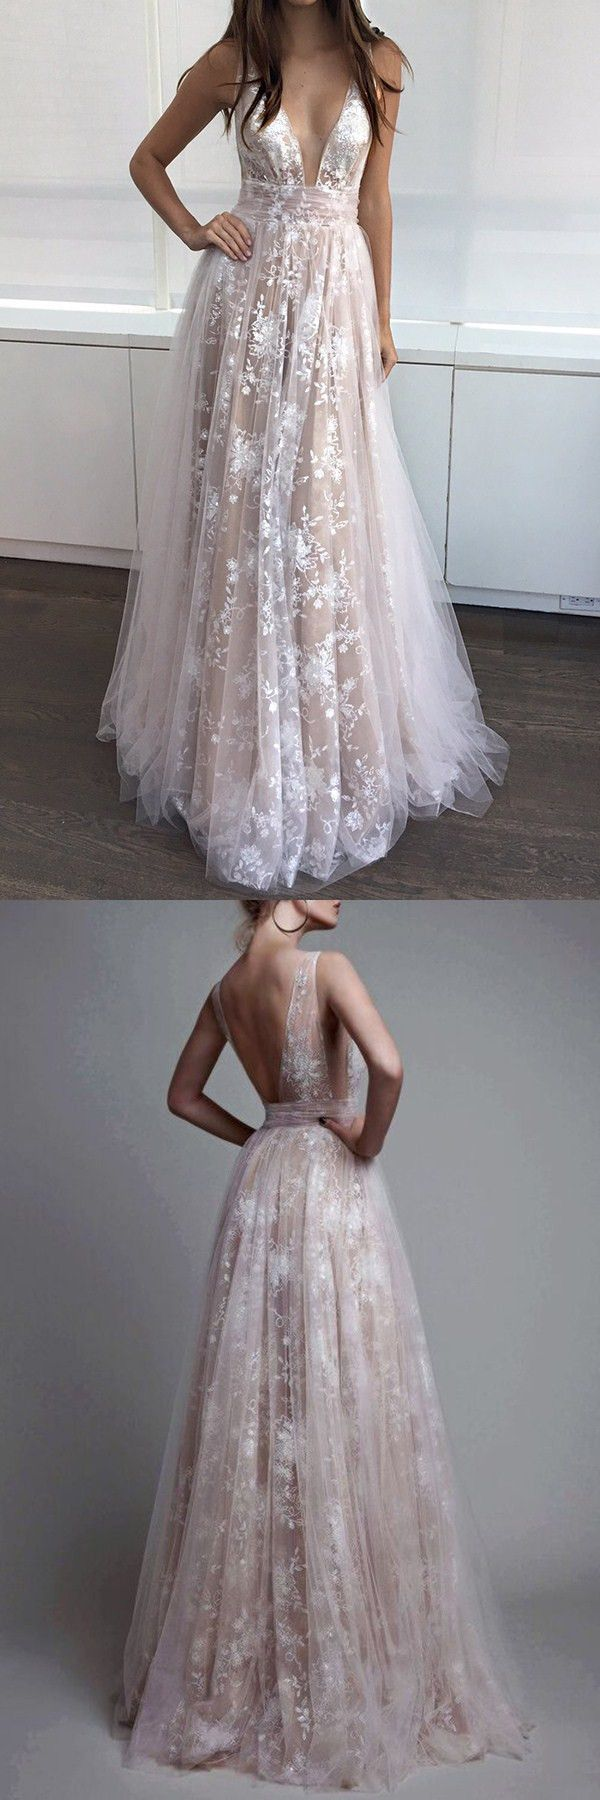 best peach prom dresses images on pinterest long prom dresses